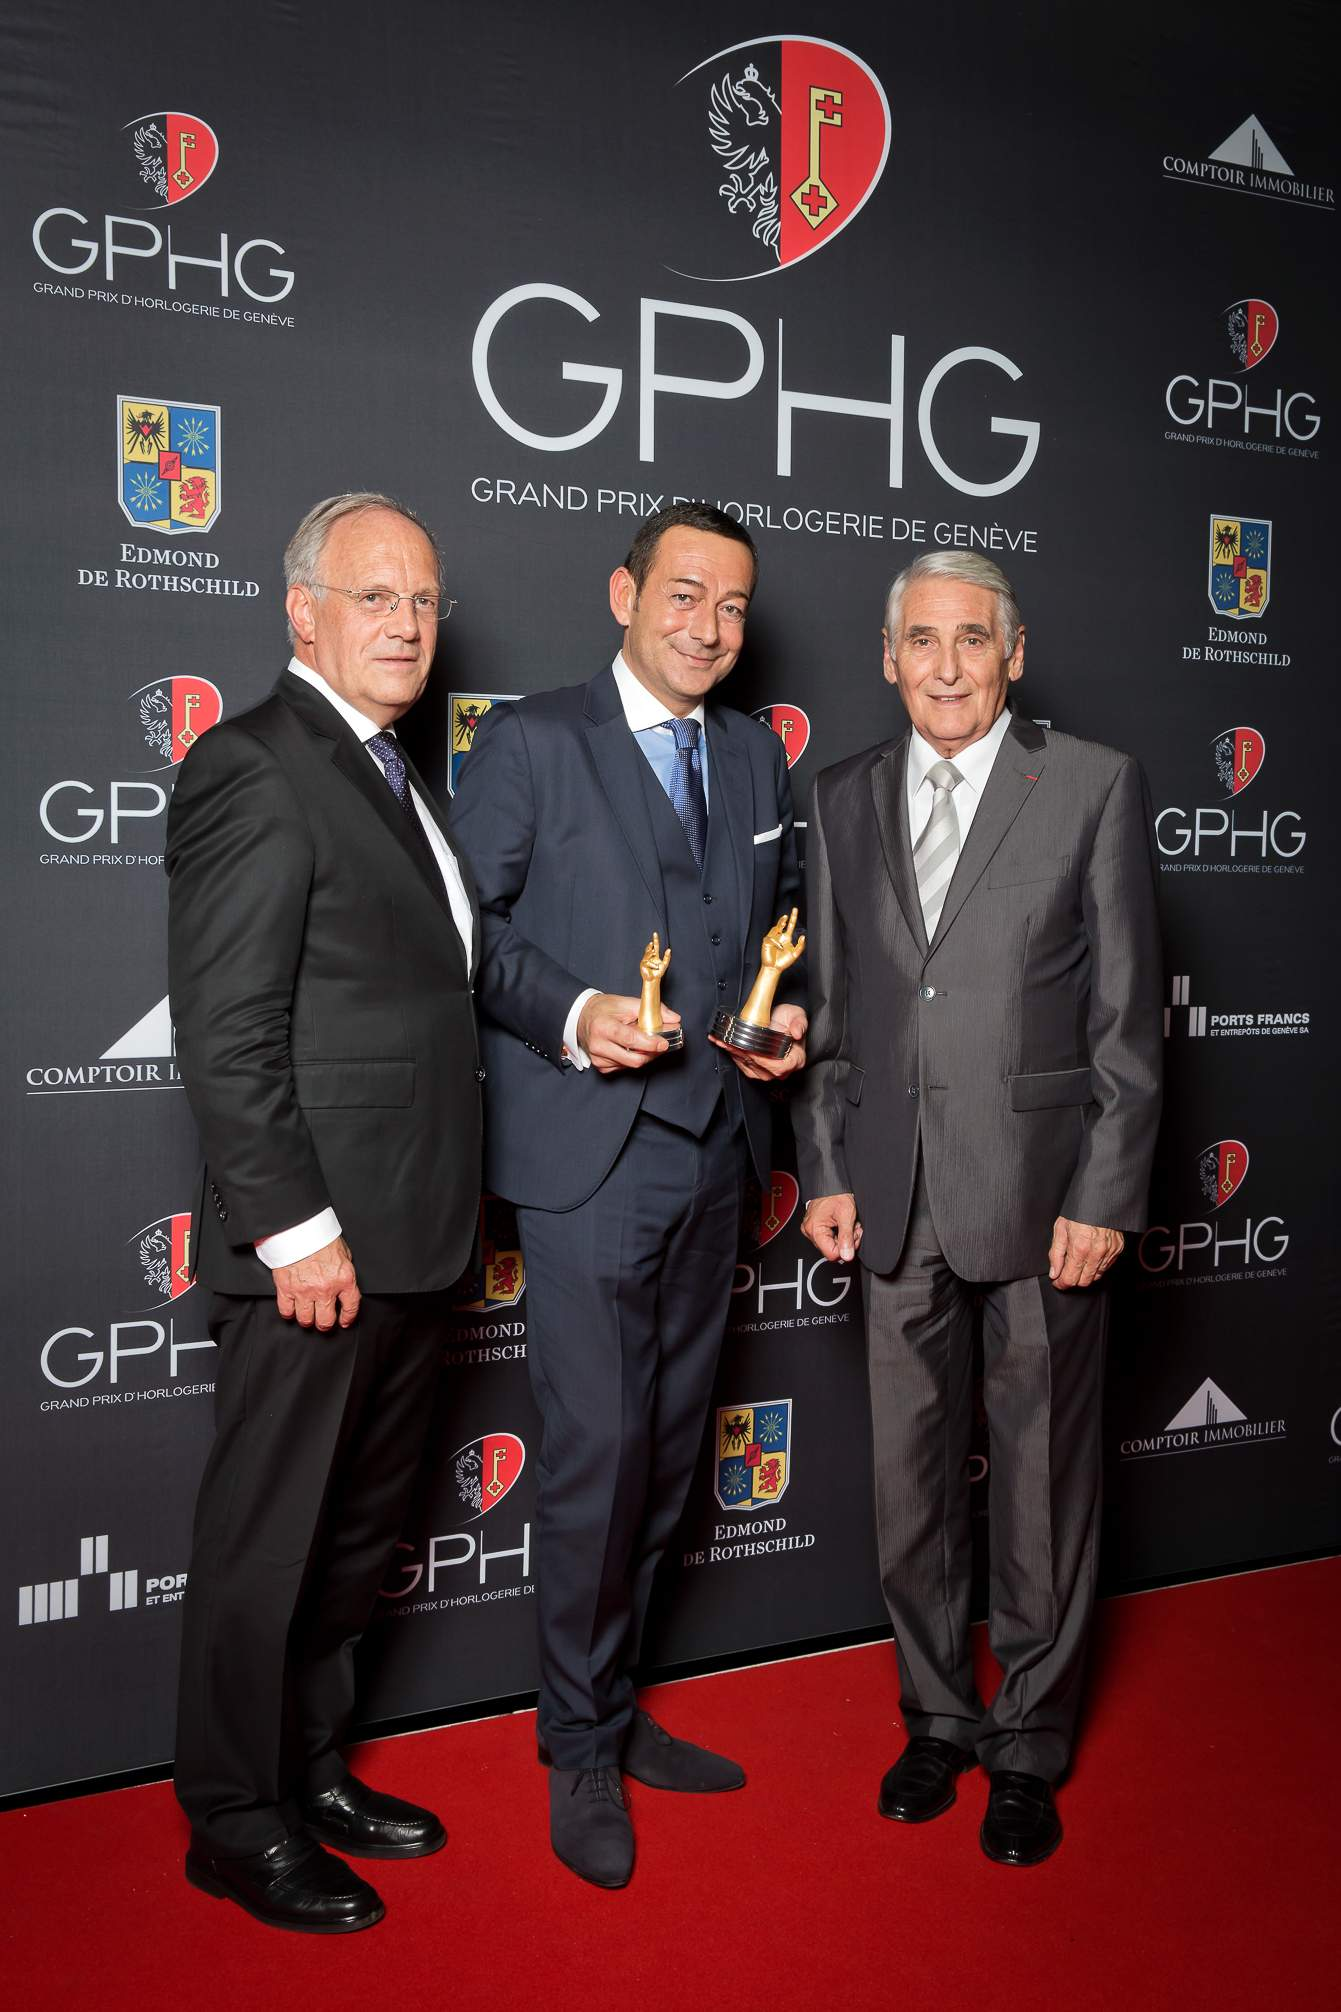 Johann Schneider-Ammann (Federal councillor), Jean-Charles Zufferey (Vice-president of Breguet, winner of the « Aiguille d'Or » Grand Prix 2014) and Carlo Lamprecht (President of the Foundation of the GPHG)